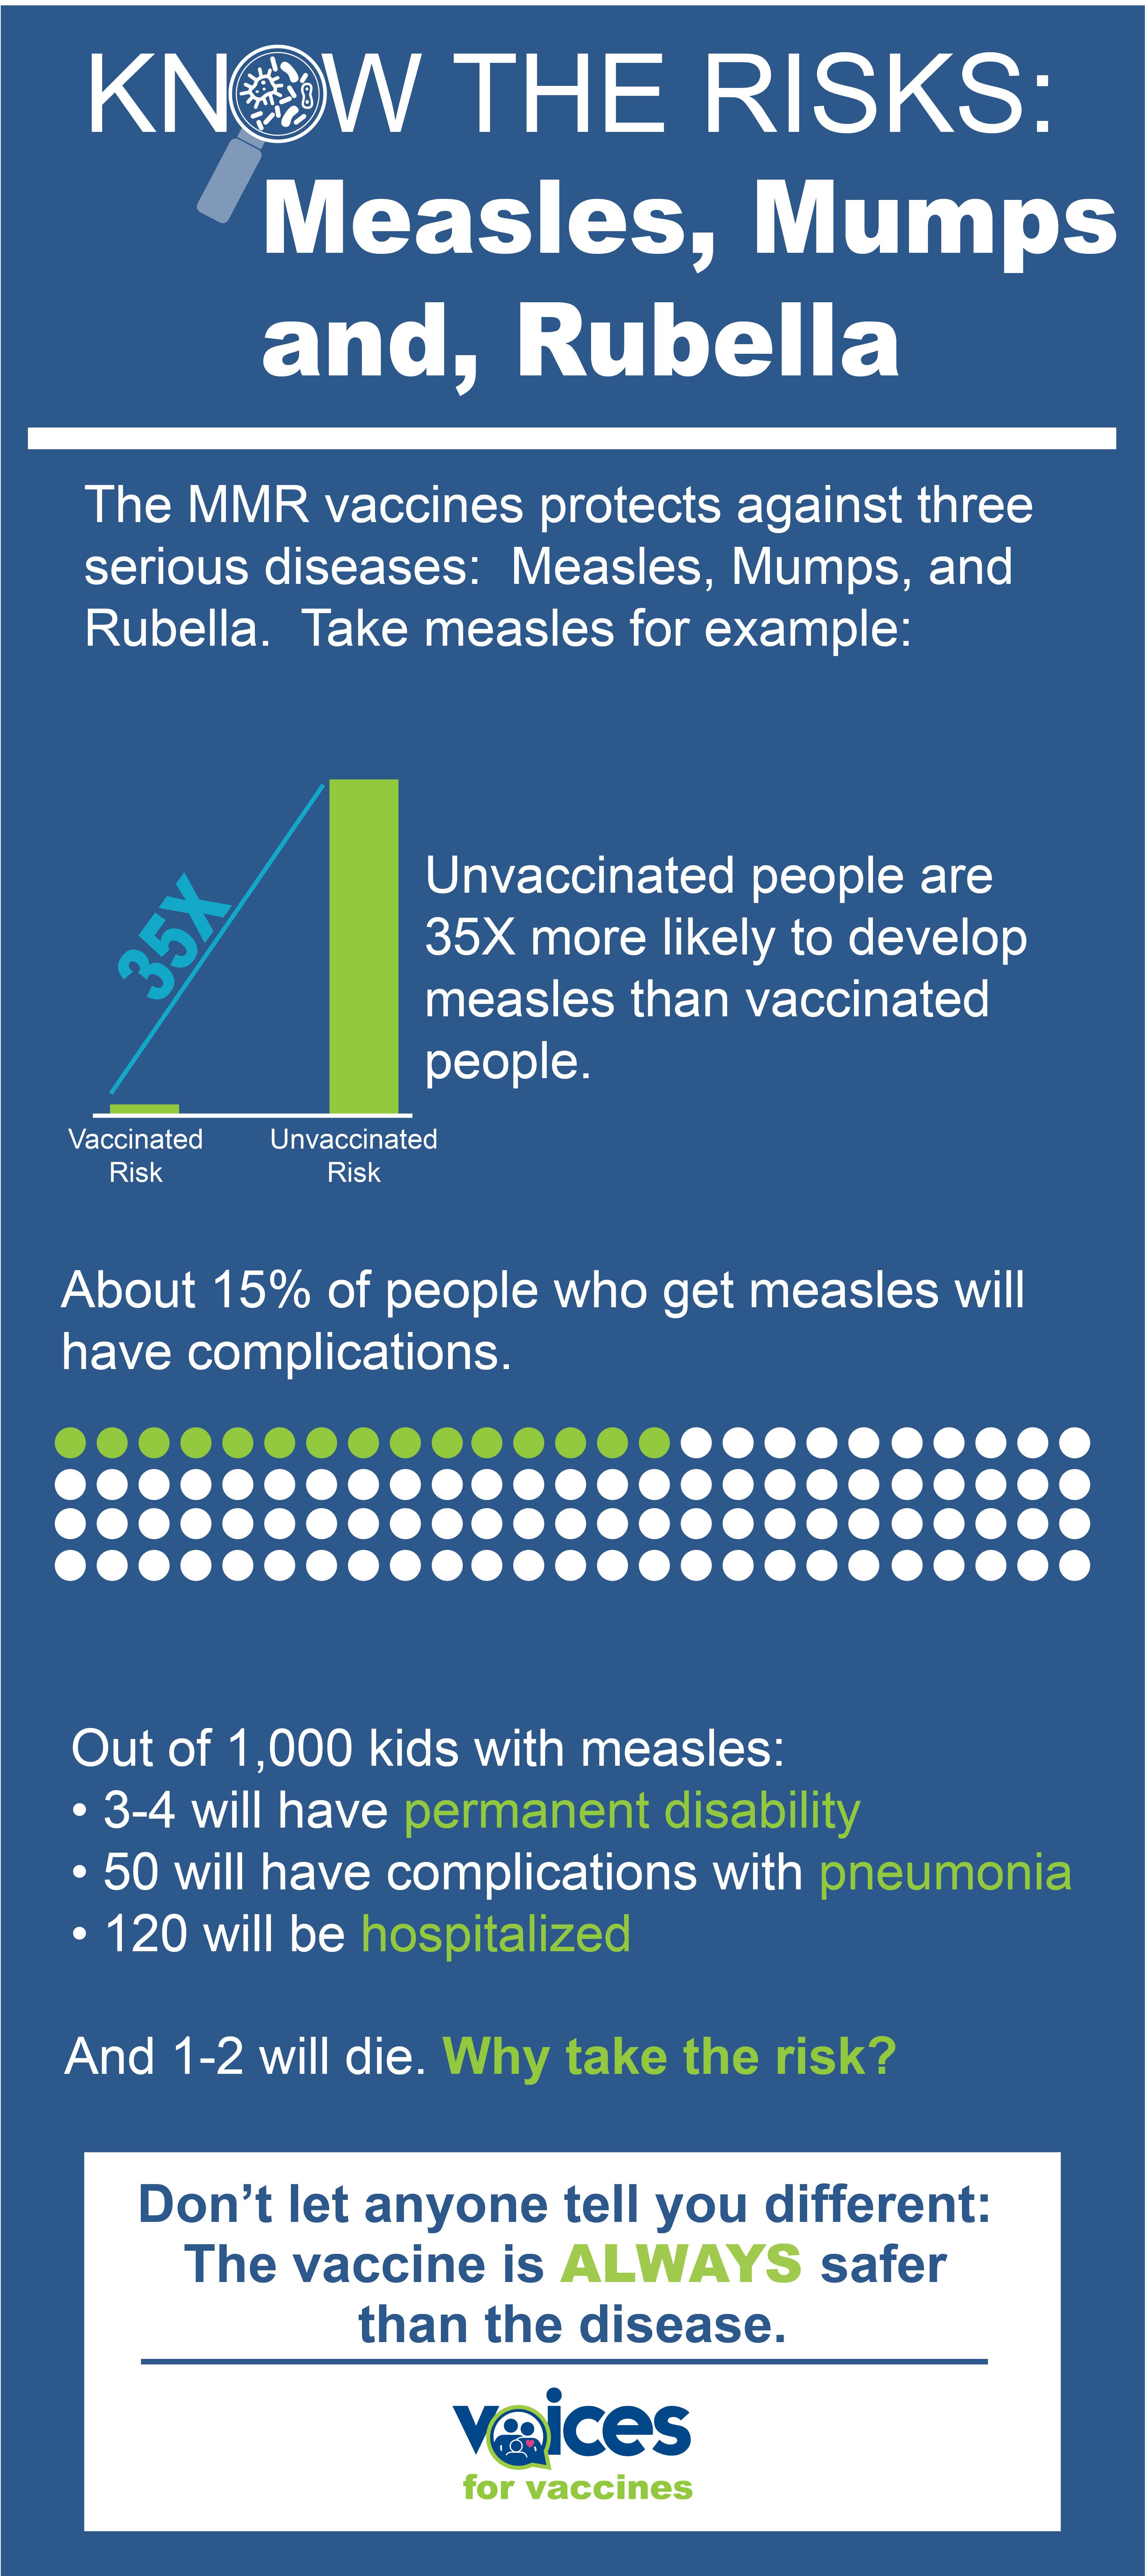 MMR protects against serious diseases. Take measles for example: Out of 1,000 people infected: 1-2 will die 3-4 will have permanent disability 50 will have complications with pneumonia 120 will be hospitalized Measles is HIGHLY contagious – 9 out of 10 non-vaccinated people exposed to measles will get sick. Unvaccinated people are 35X more likely to develop measles than vaccinated people. About 15% of people who get measles will have complications. Why take the risk?